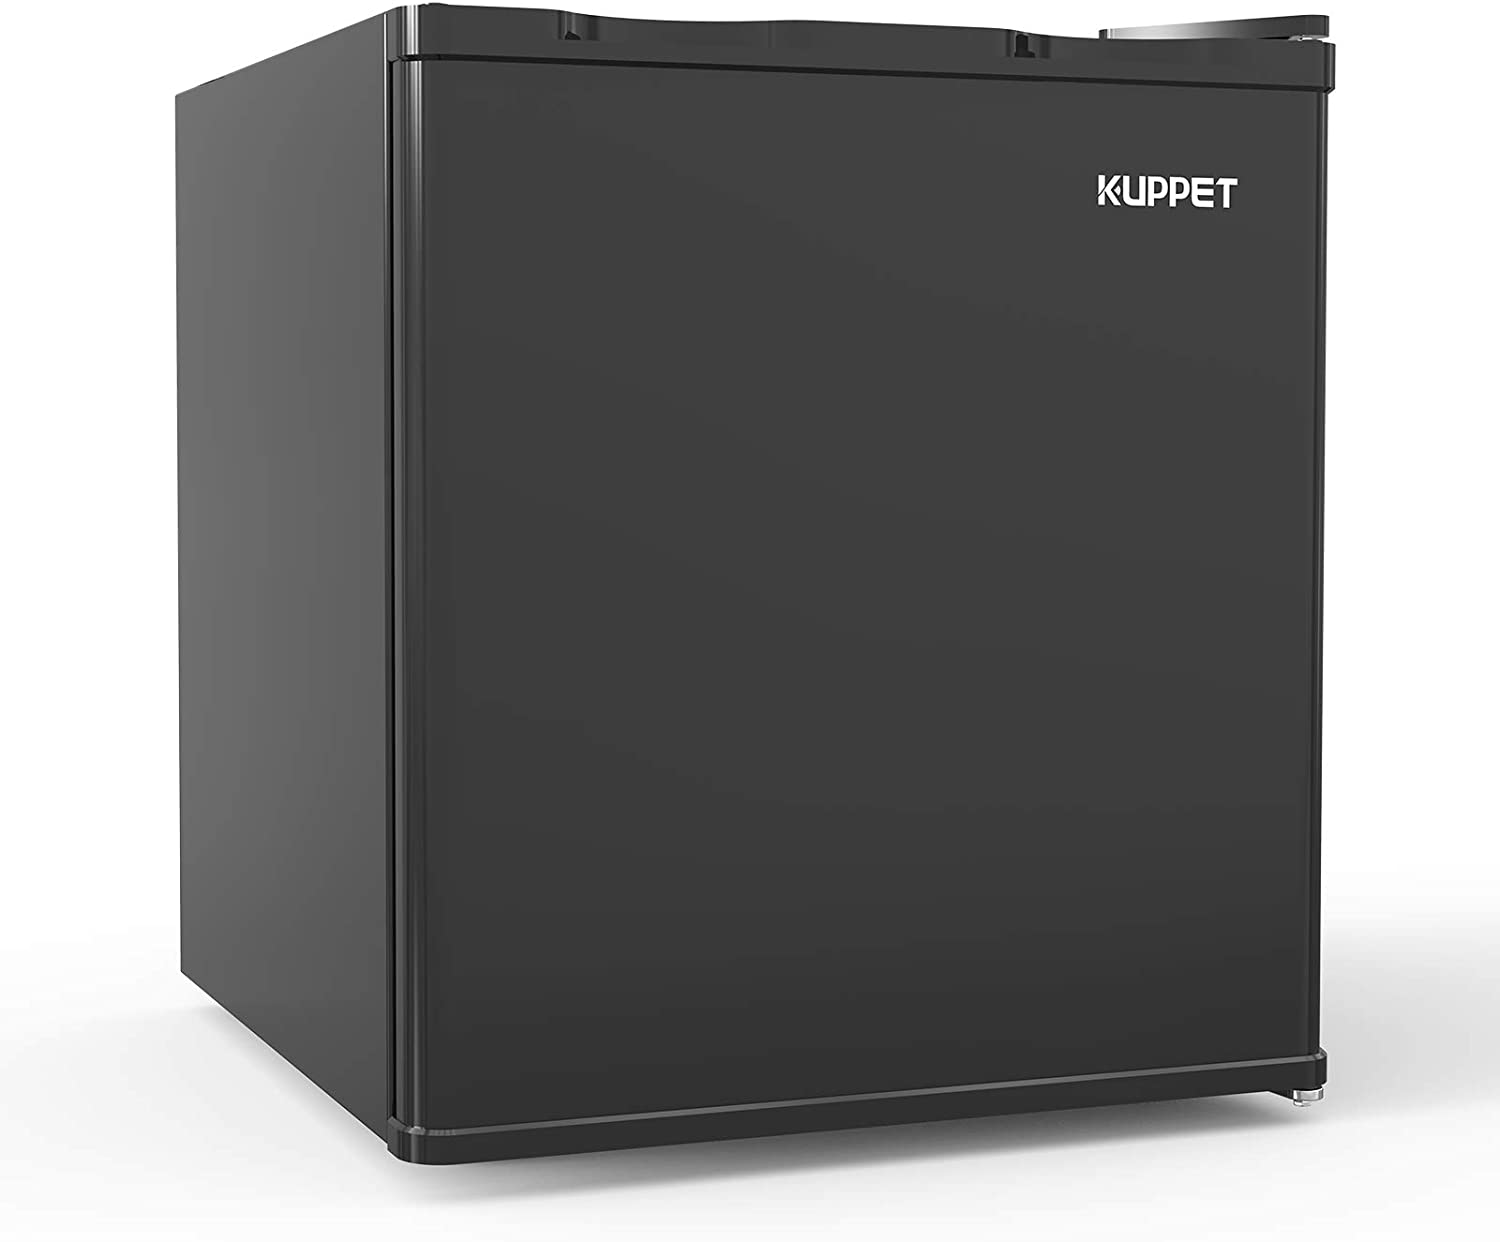 KUPPET Compact Upright Freezer, Single Door, Reversible Stainless Steel Door, Adjustable Removable (Black, 1.1 cu. ft.)